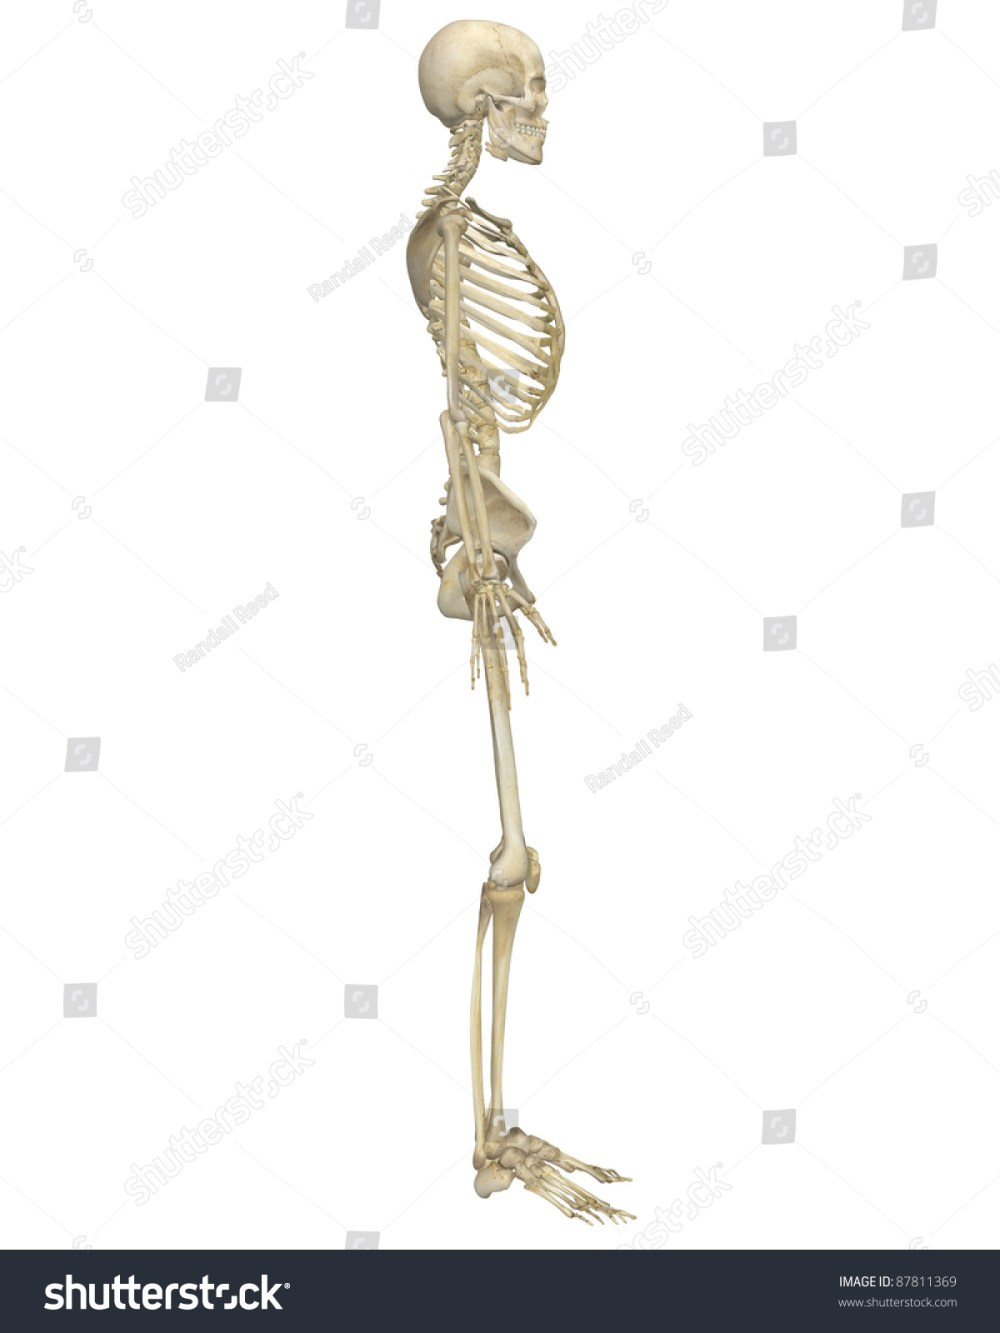 medium resolution of a side view illustration of the human skeletal anatomy very educational and detailed